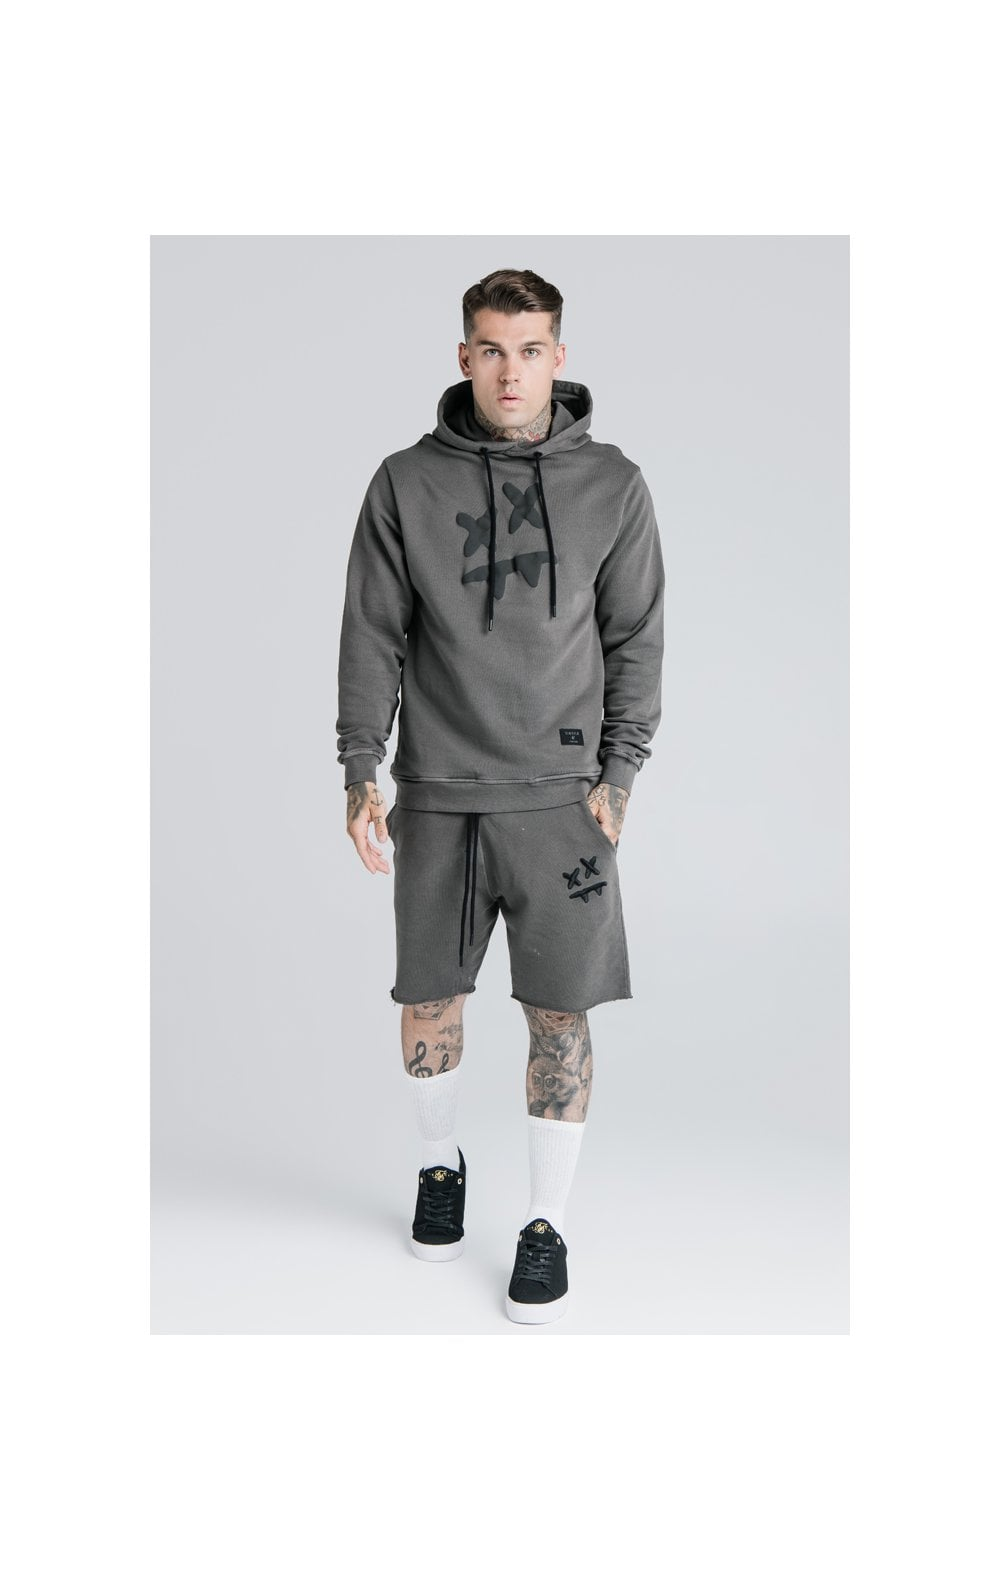 SikSilk X Steve Aoki Relaxed Shorts - Washed Grey (3)